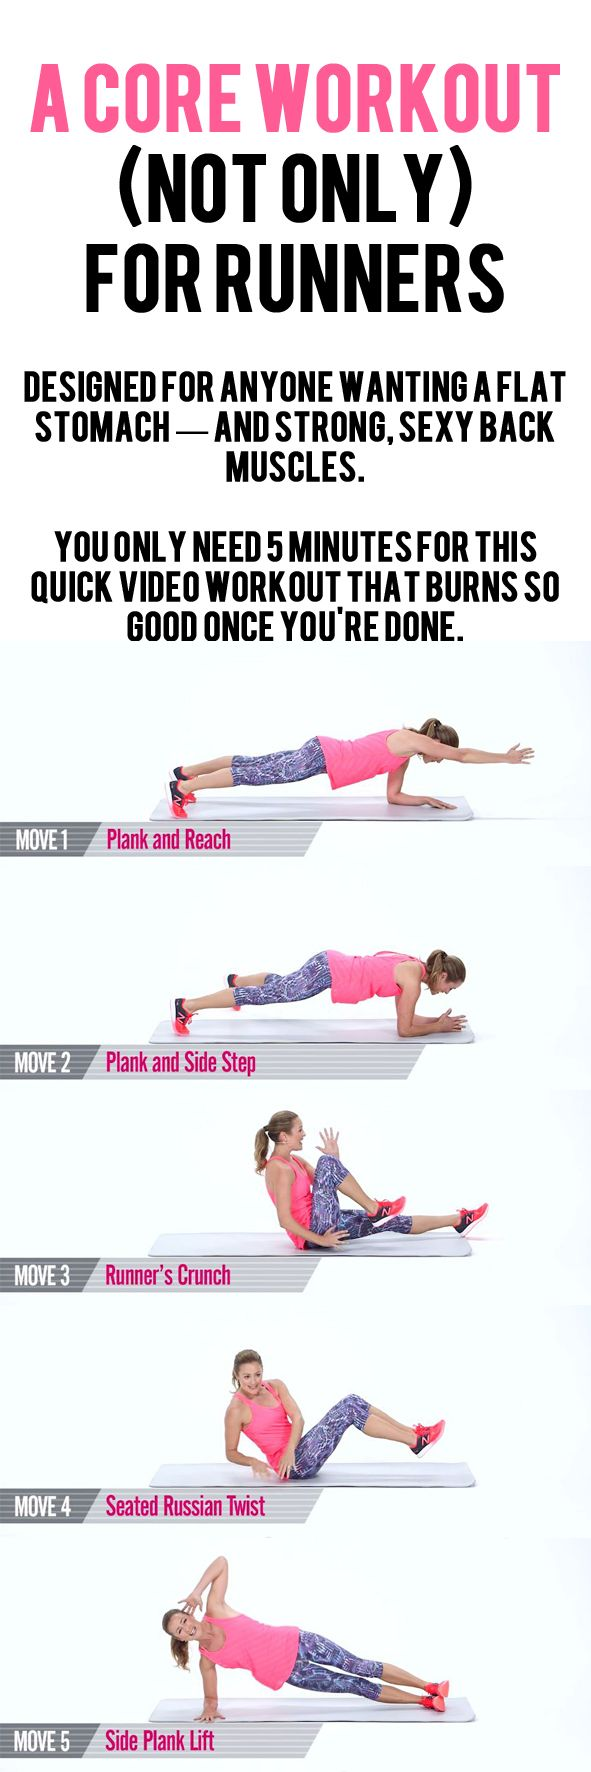 Best ideas about core workouts on pinterest